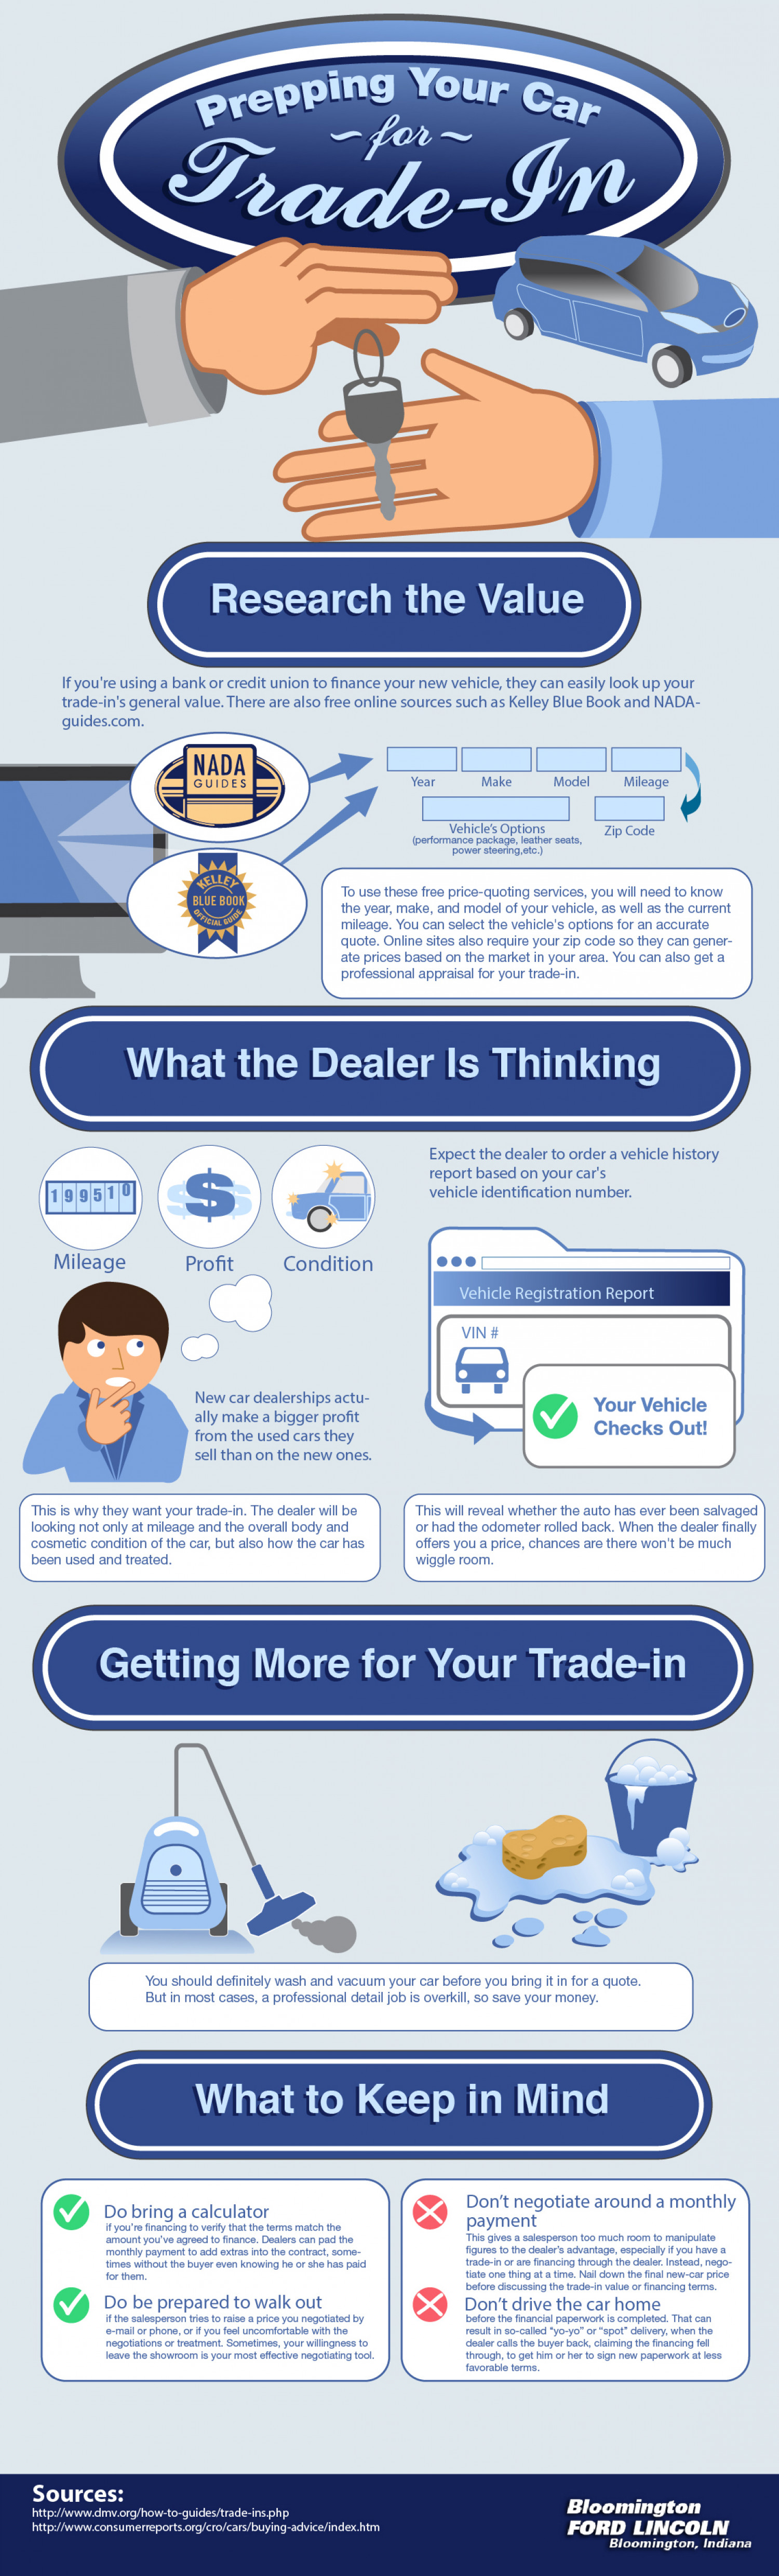 Prepping Your Car for Trade-In Infographic